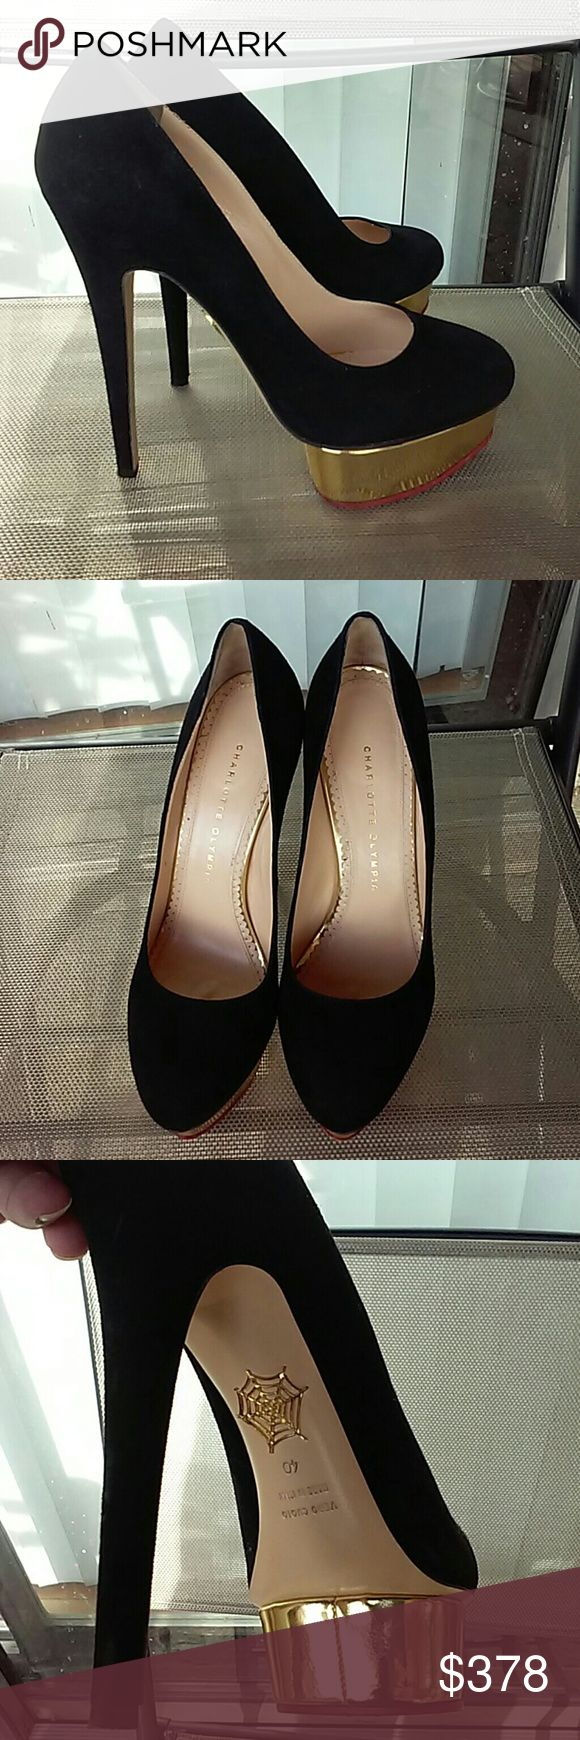 Charlotte Olympia Dolly pumps Gold metallic island platform and black suede,minor wear,ask for additional pictures Charlotte Olympia Shoes Platforms